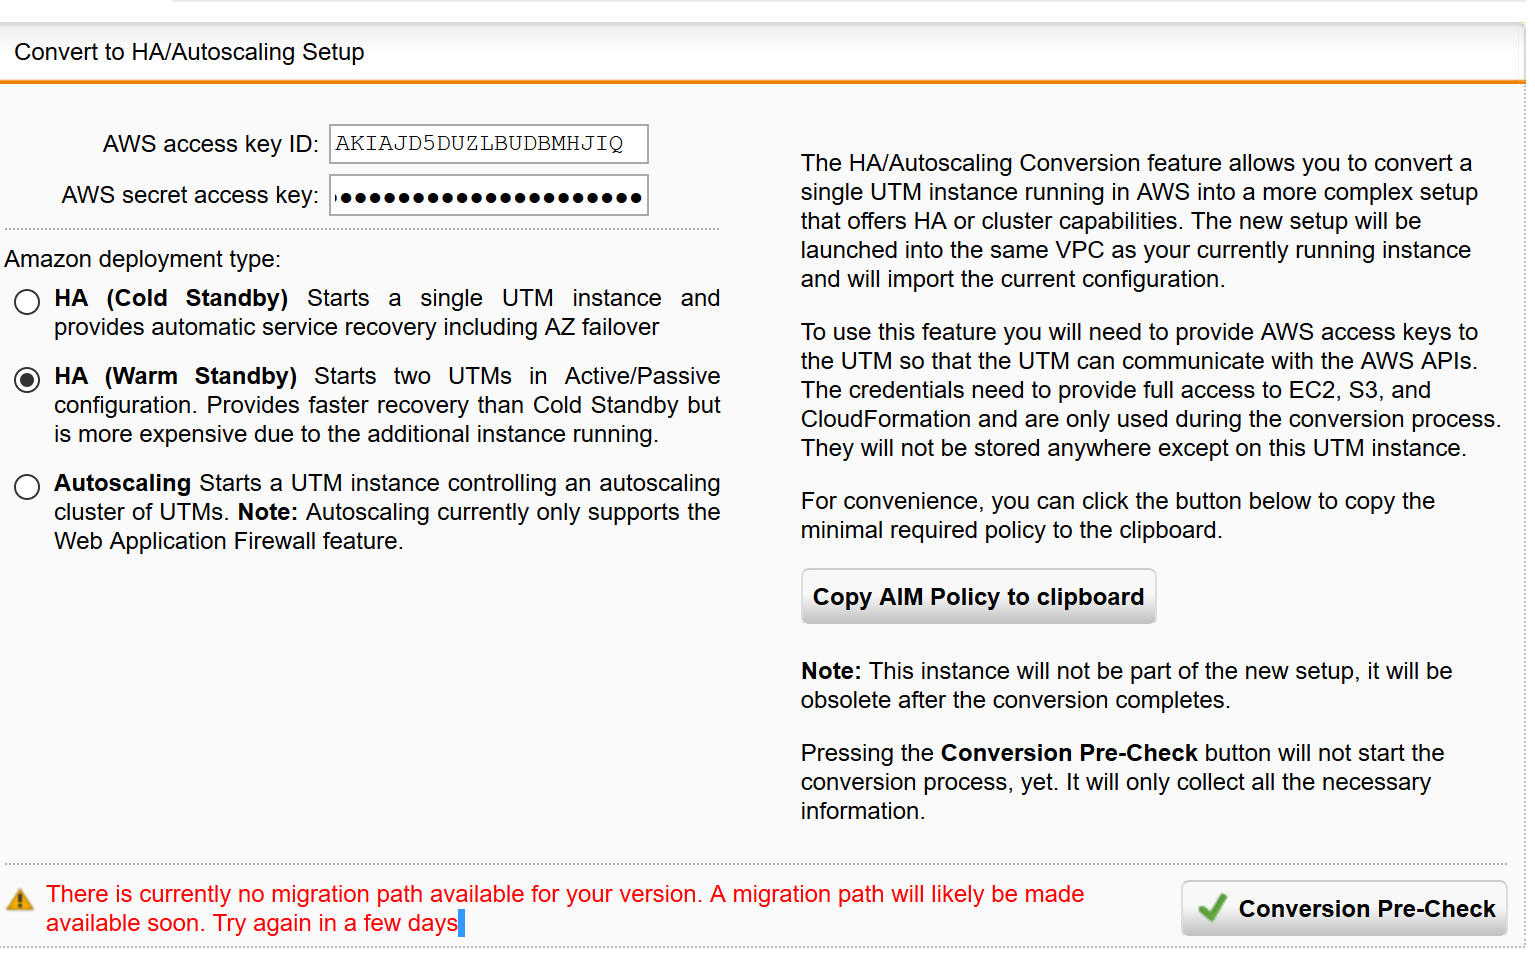 Forum for HA and Autoscaling UTM deployments @ AWS? - UTM on